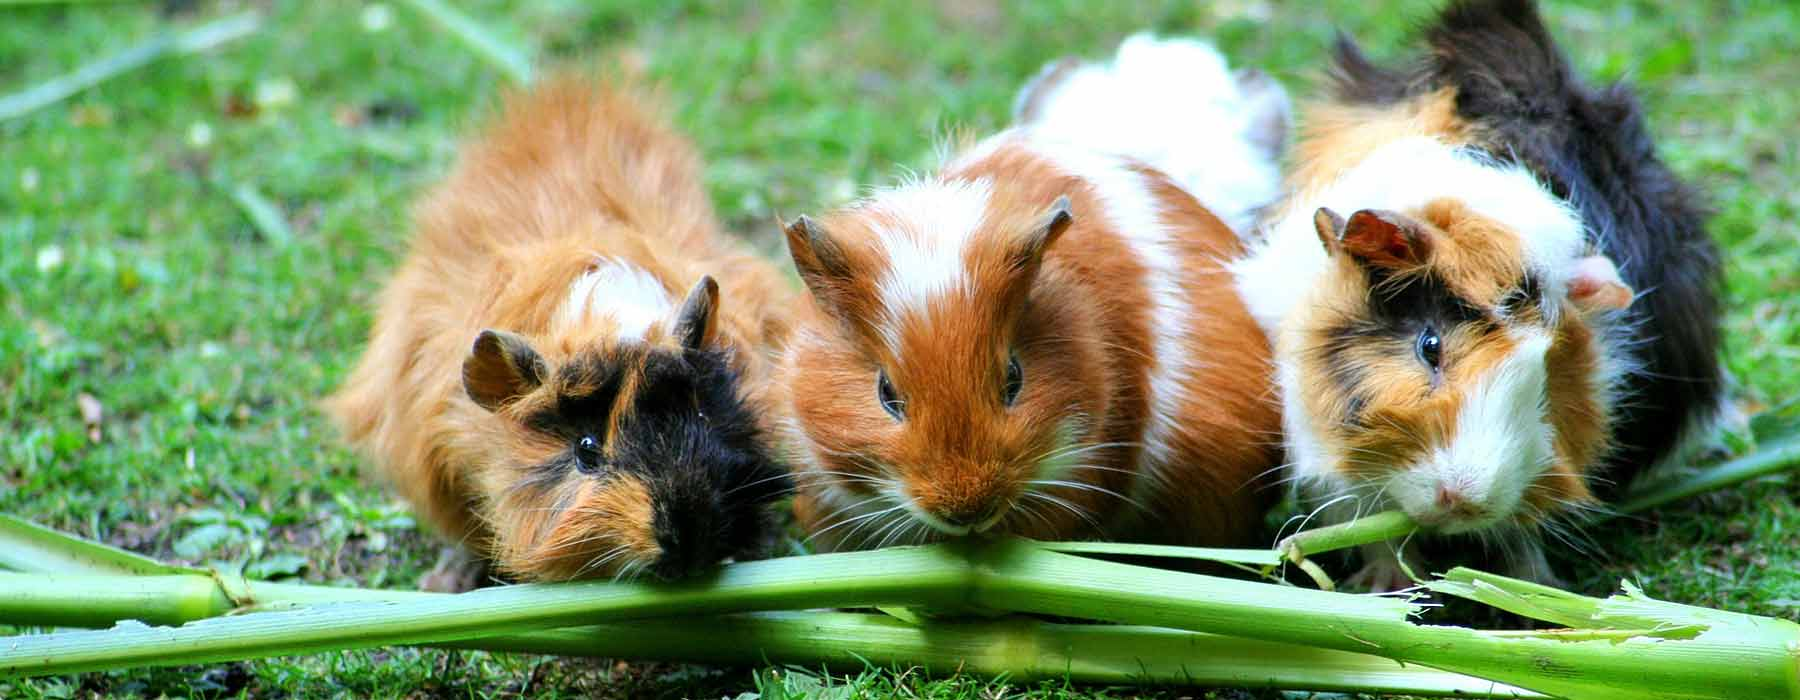 Guinea pigs outdoors on the grass, eating plants